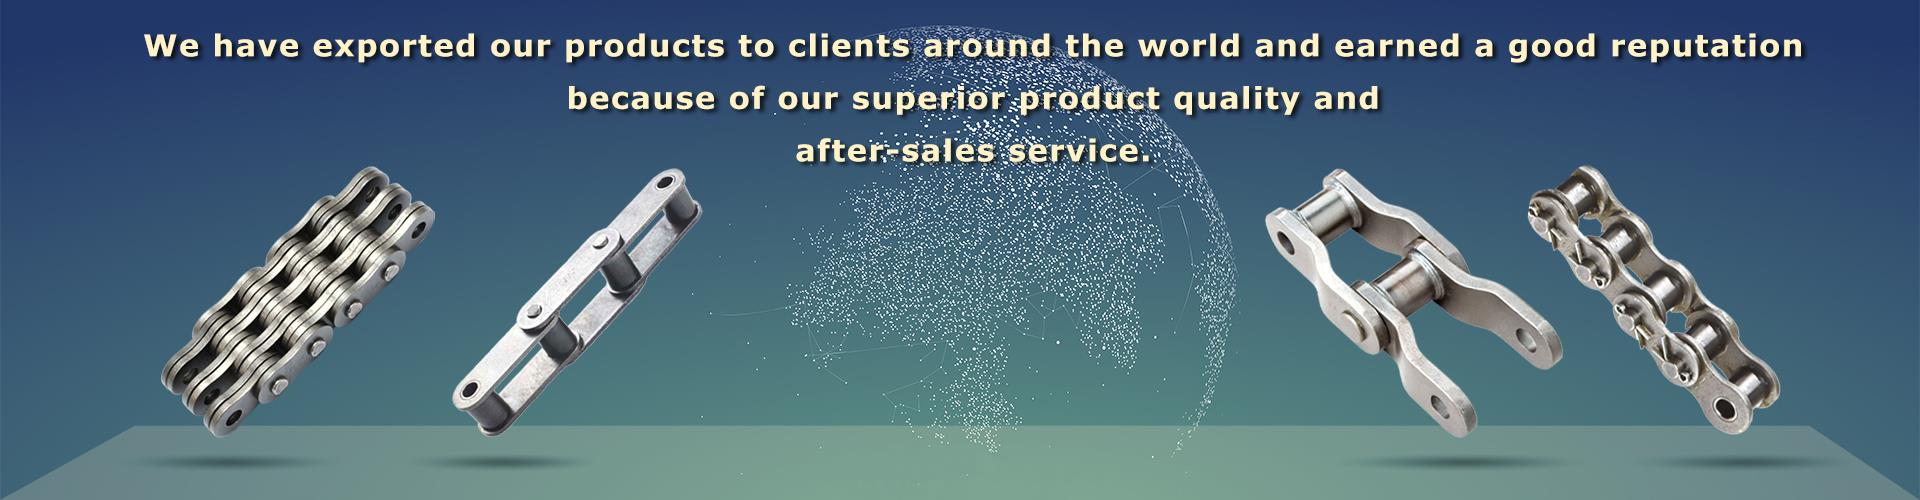 Transmission  made in China - replacement parts -  in Dortmund Germany  Parts of Gleason Type Spiral Bevel Gear with ce certificate top quality low price